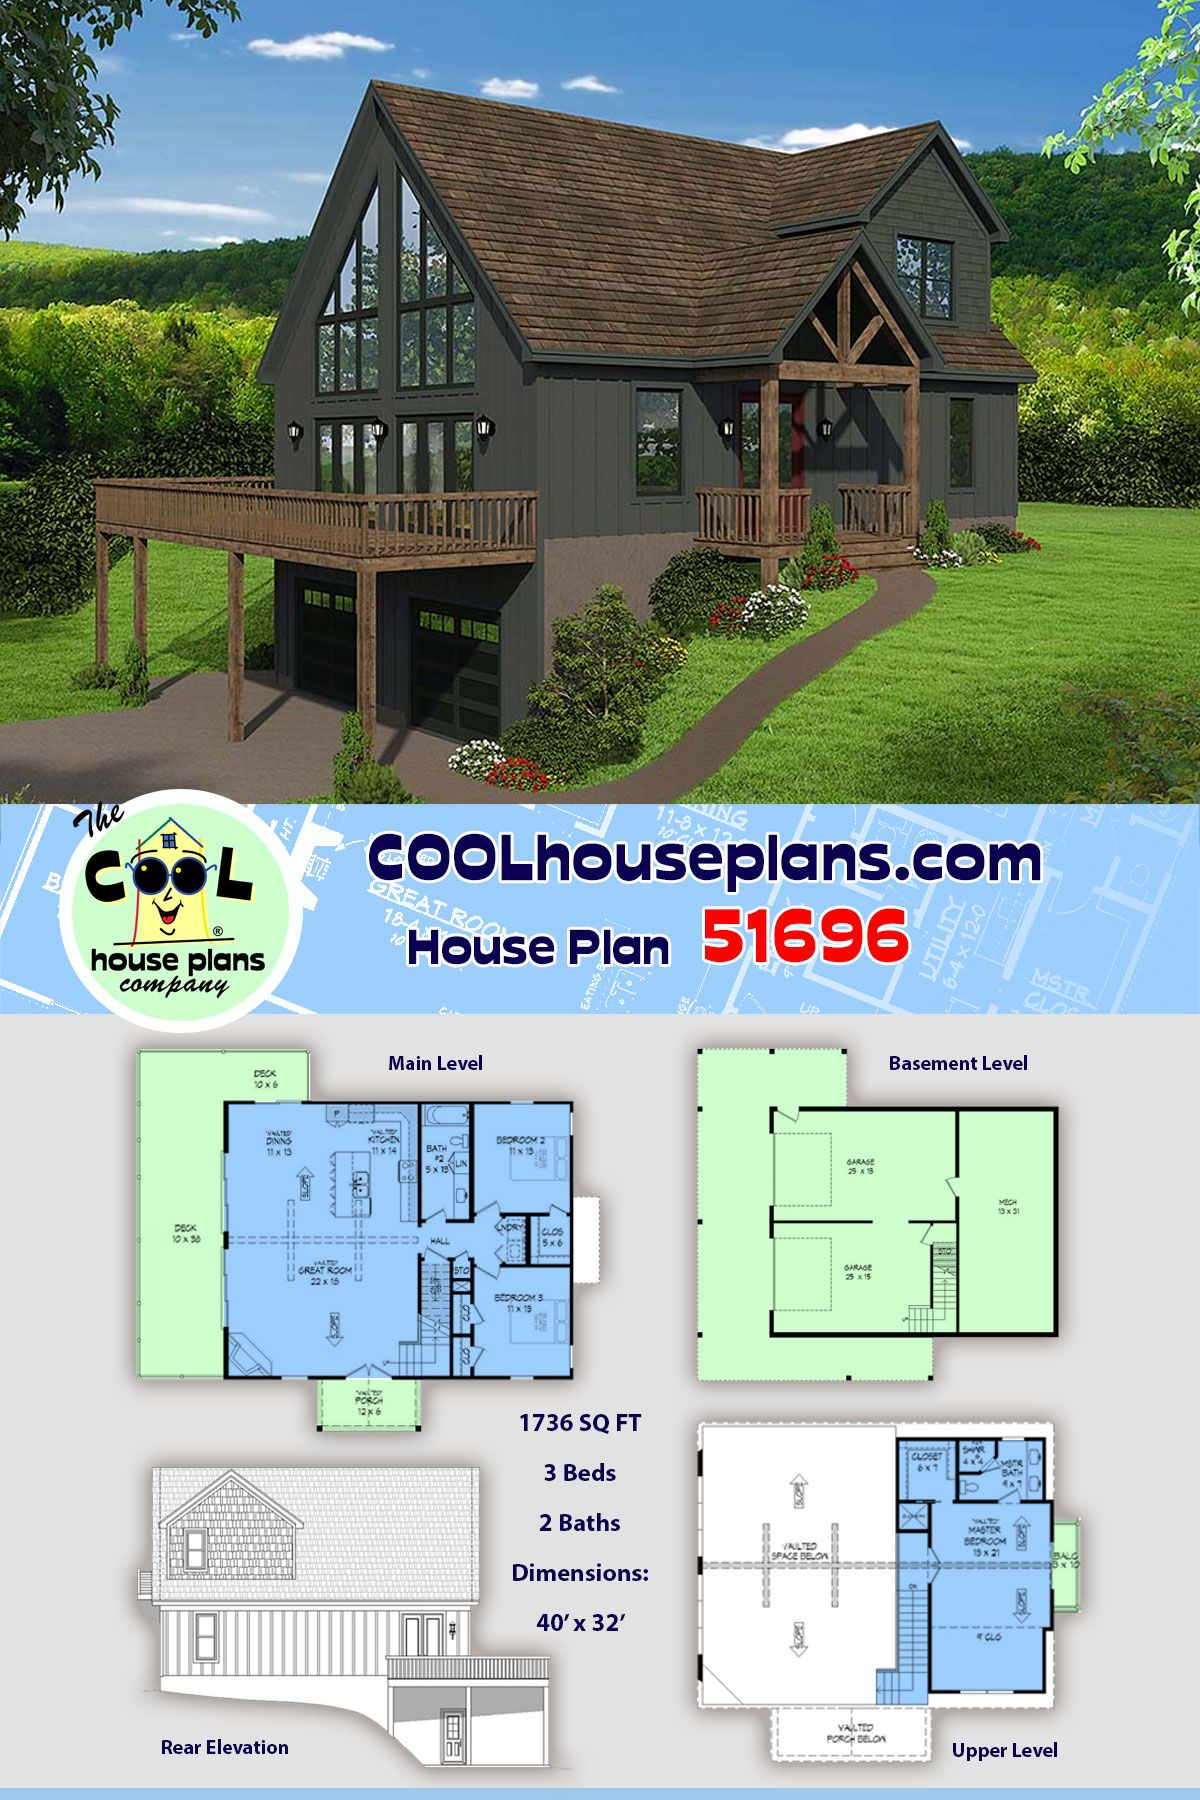 Craftsman Style House Plan 51696 With 3 Bed 2 Bath 2 Car Garage Craftsman Style House Plans Sloping Lot House Plan House Plans